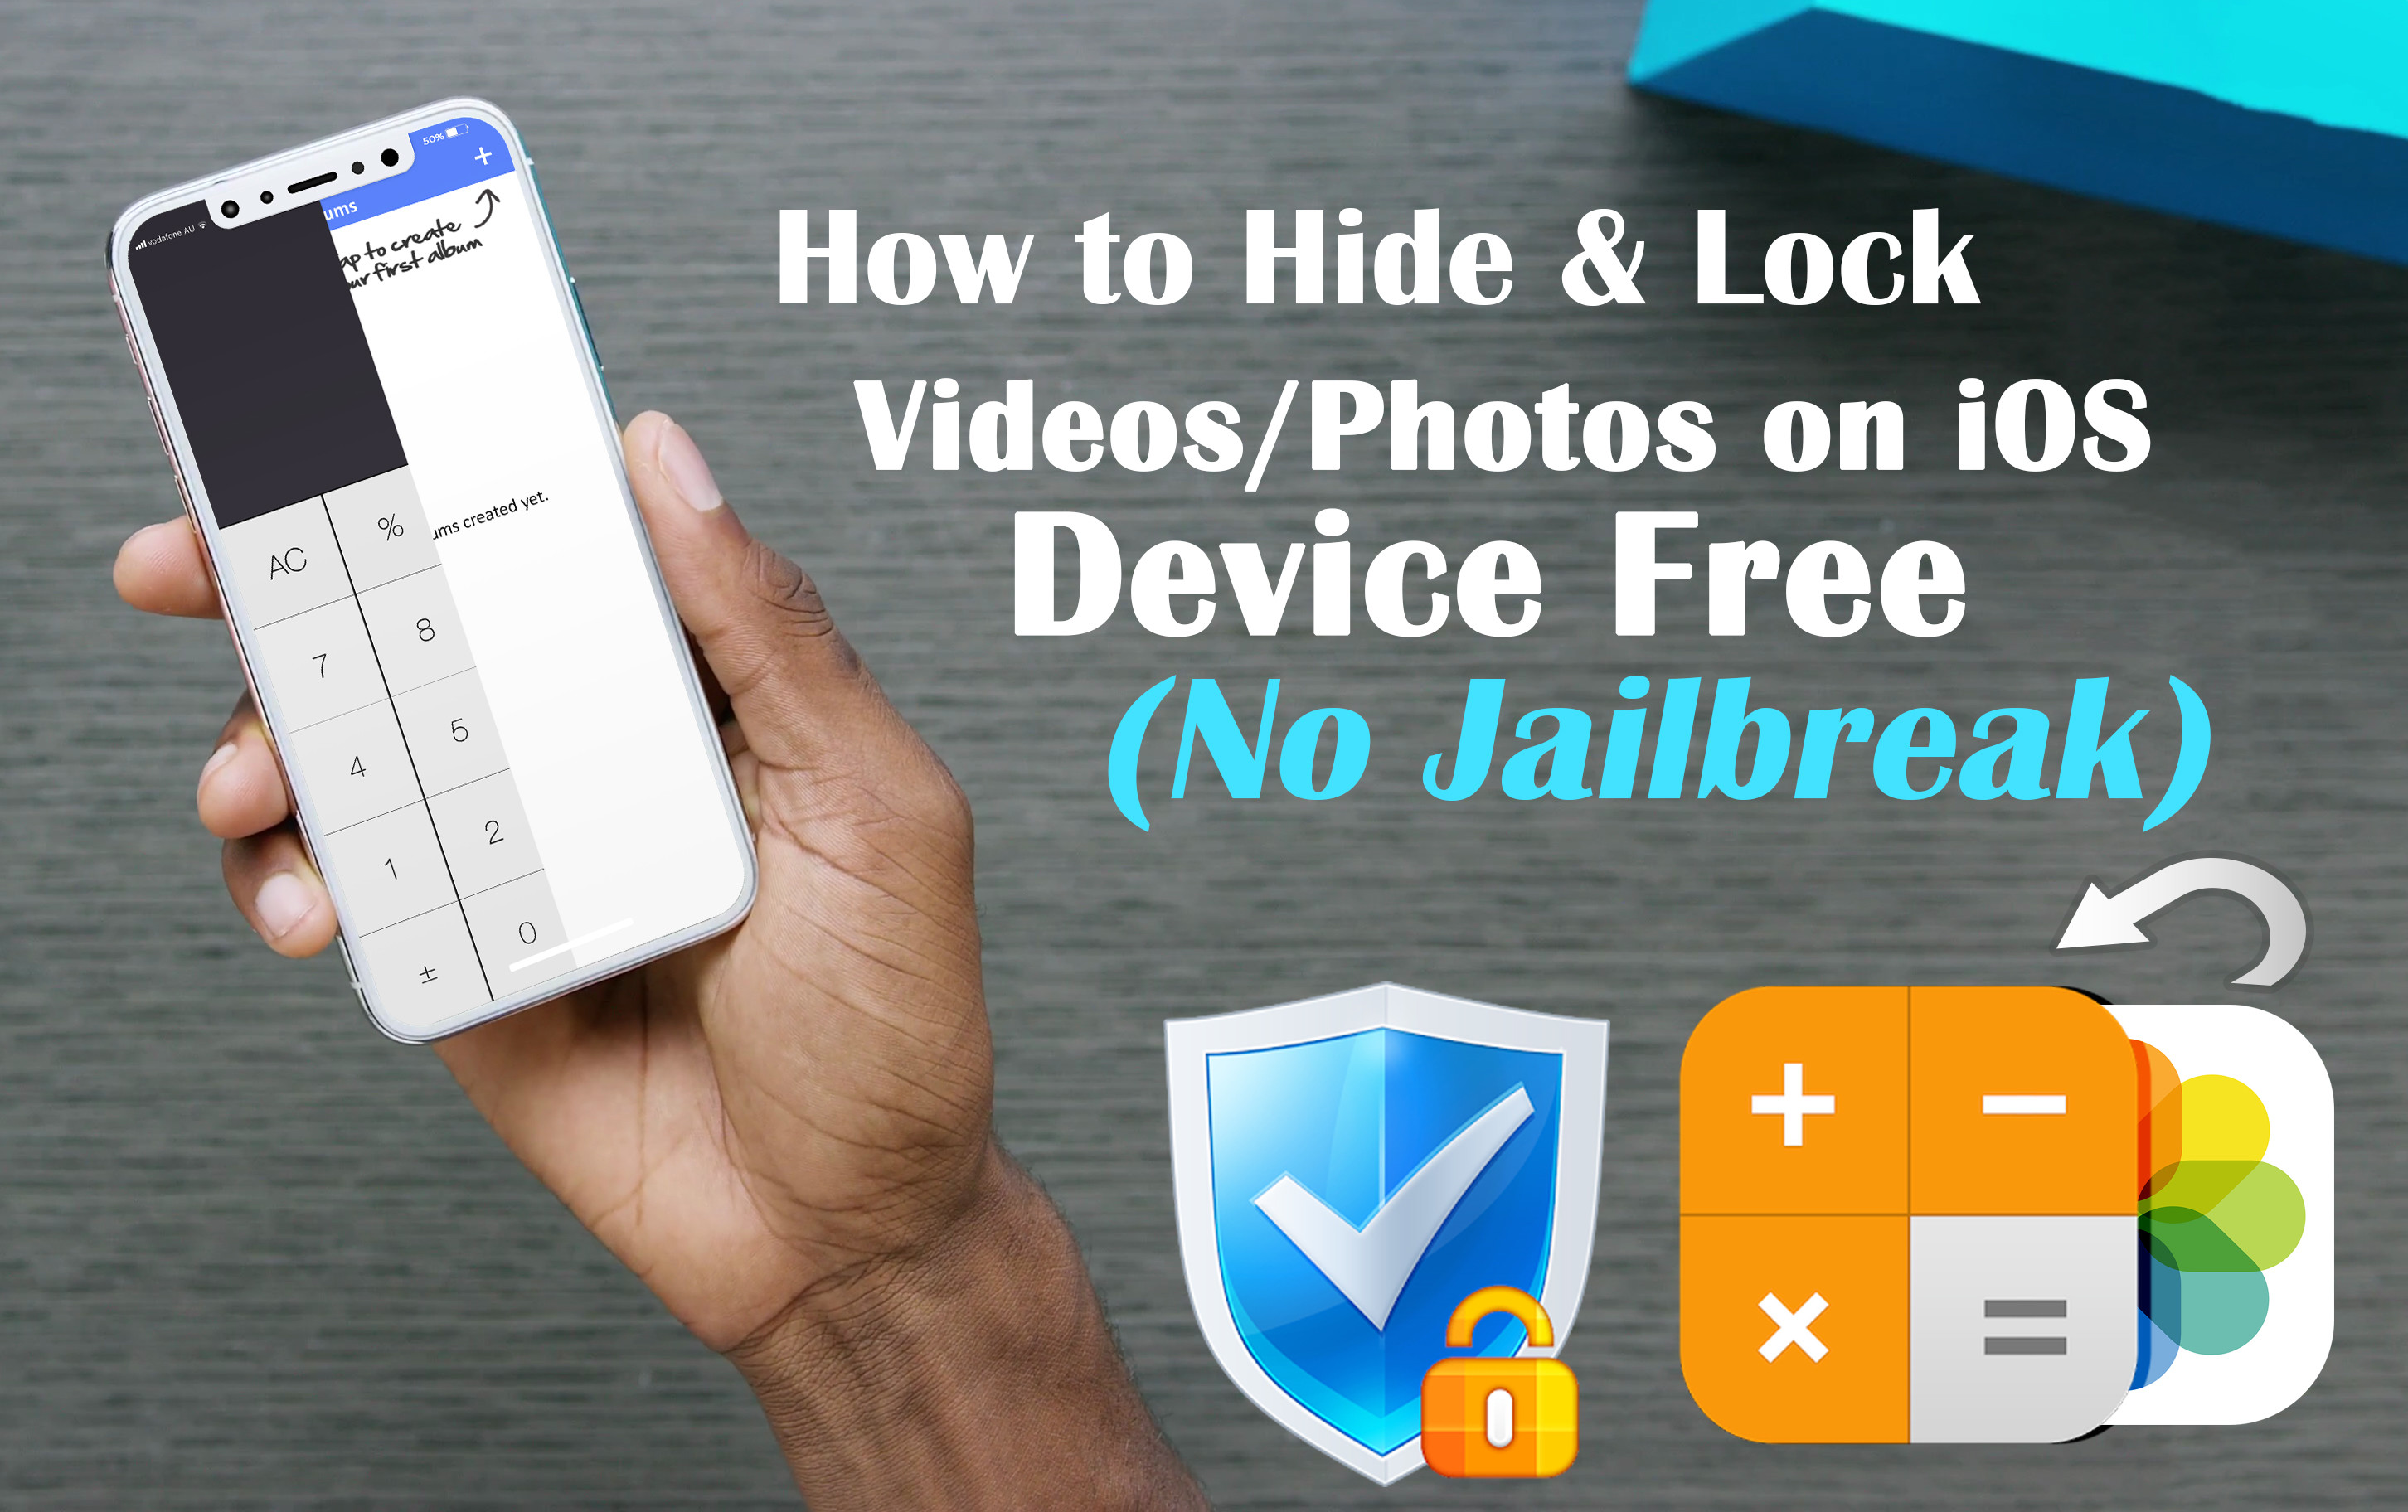 How to Hide & Lock Videos/Photos on Your iOS Device Free (No Jailbreak)